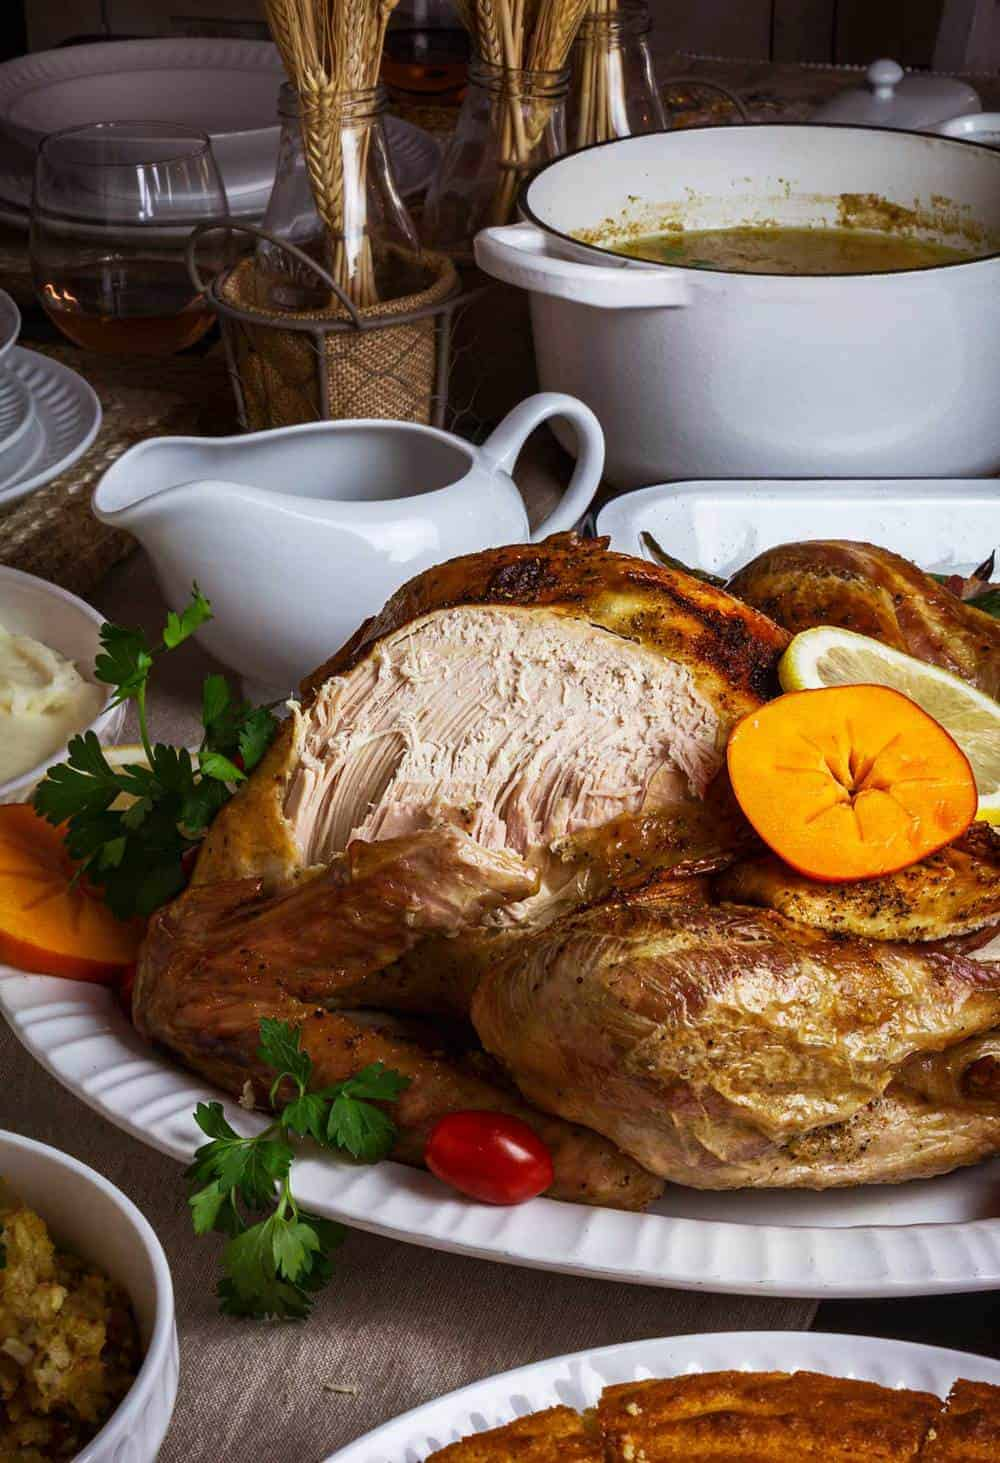 Side shot of turkey roast with a portion of the breast cut off and surrounded by side dishes.